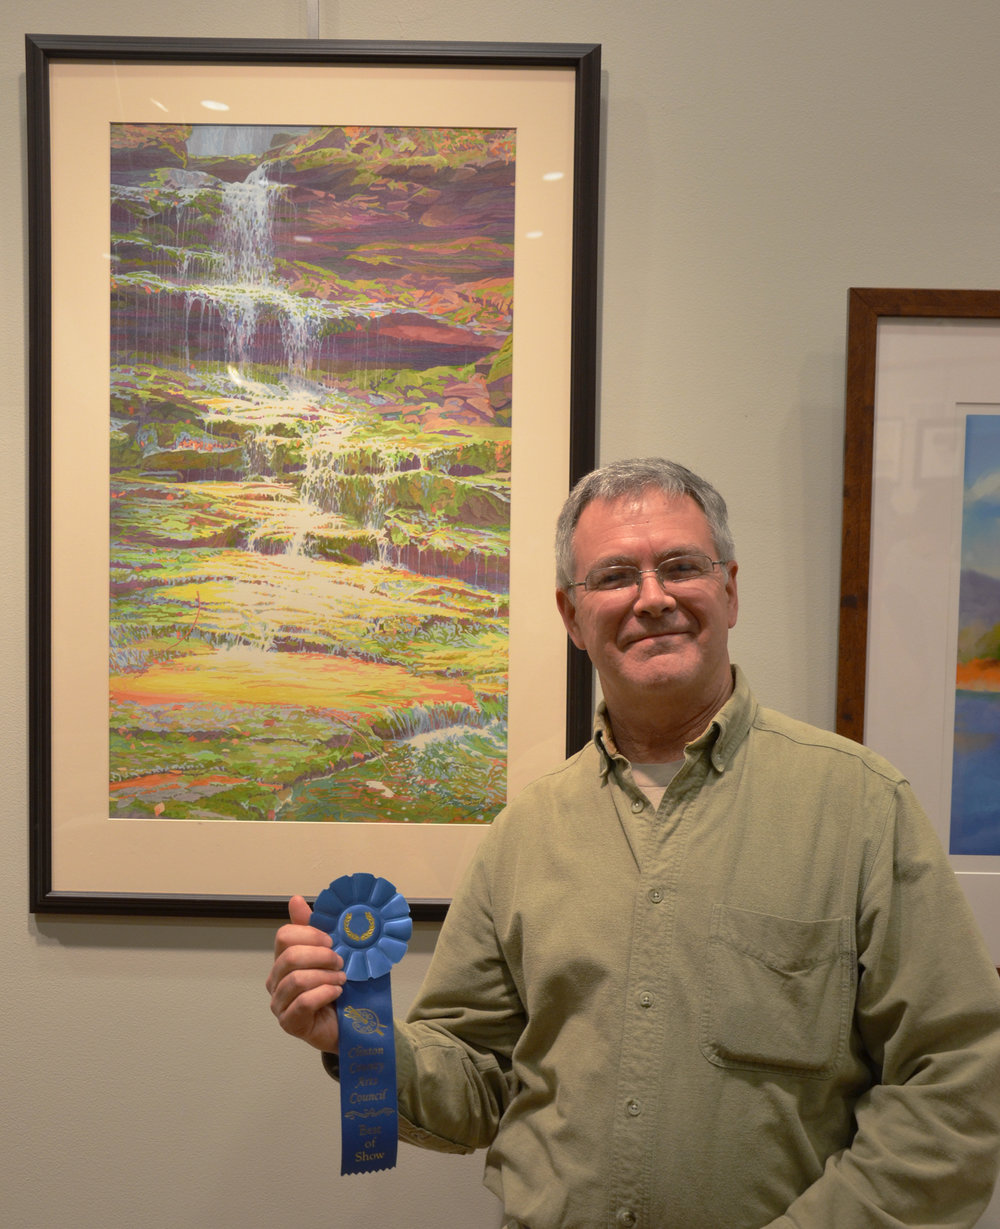 Best in Show - Layers by John C. Bierly